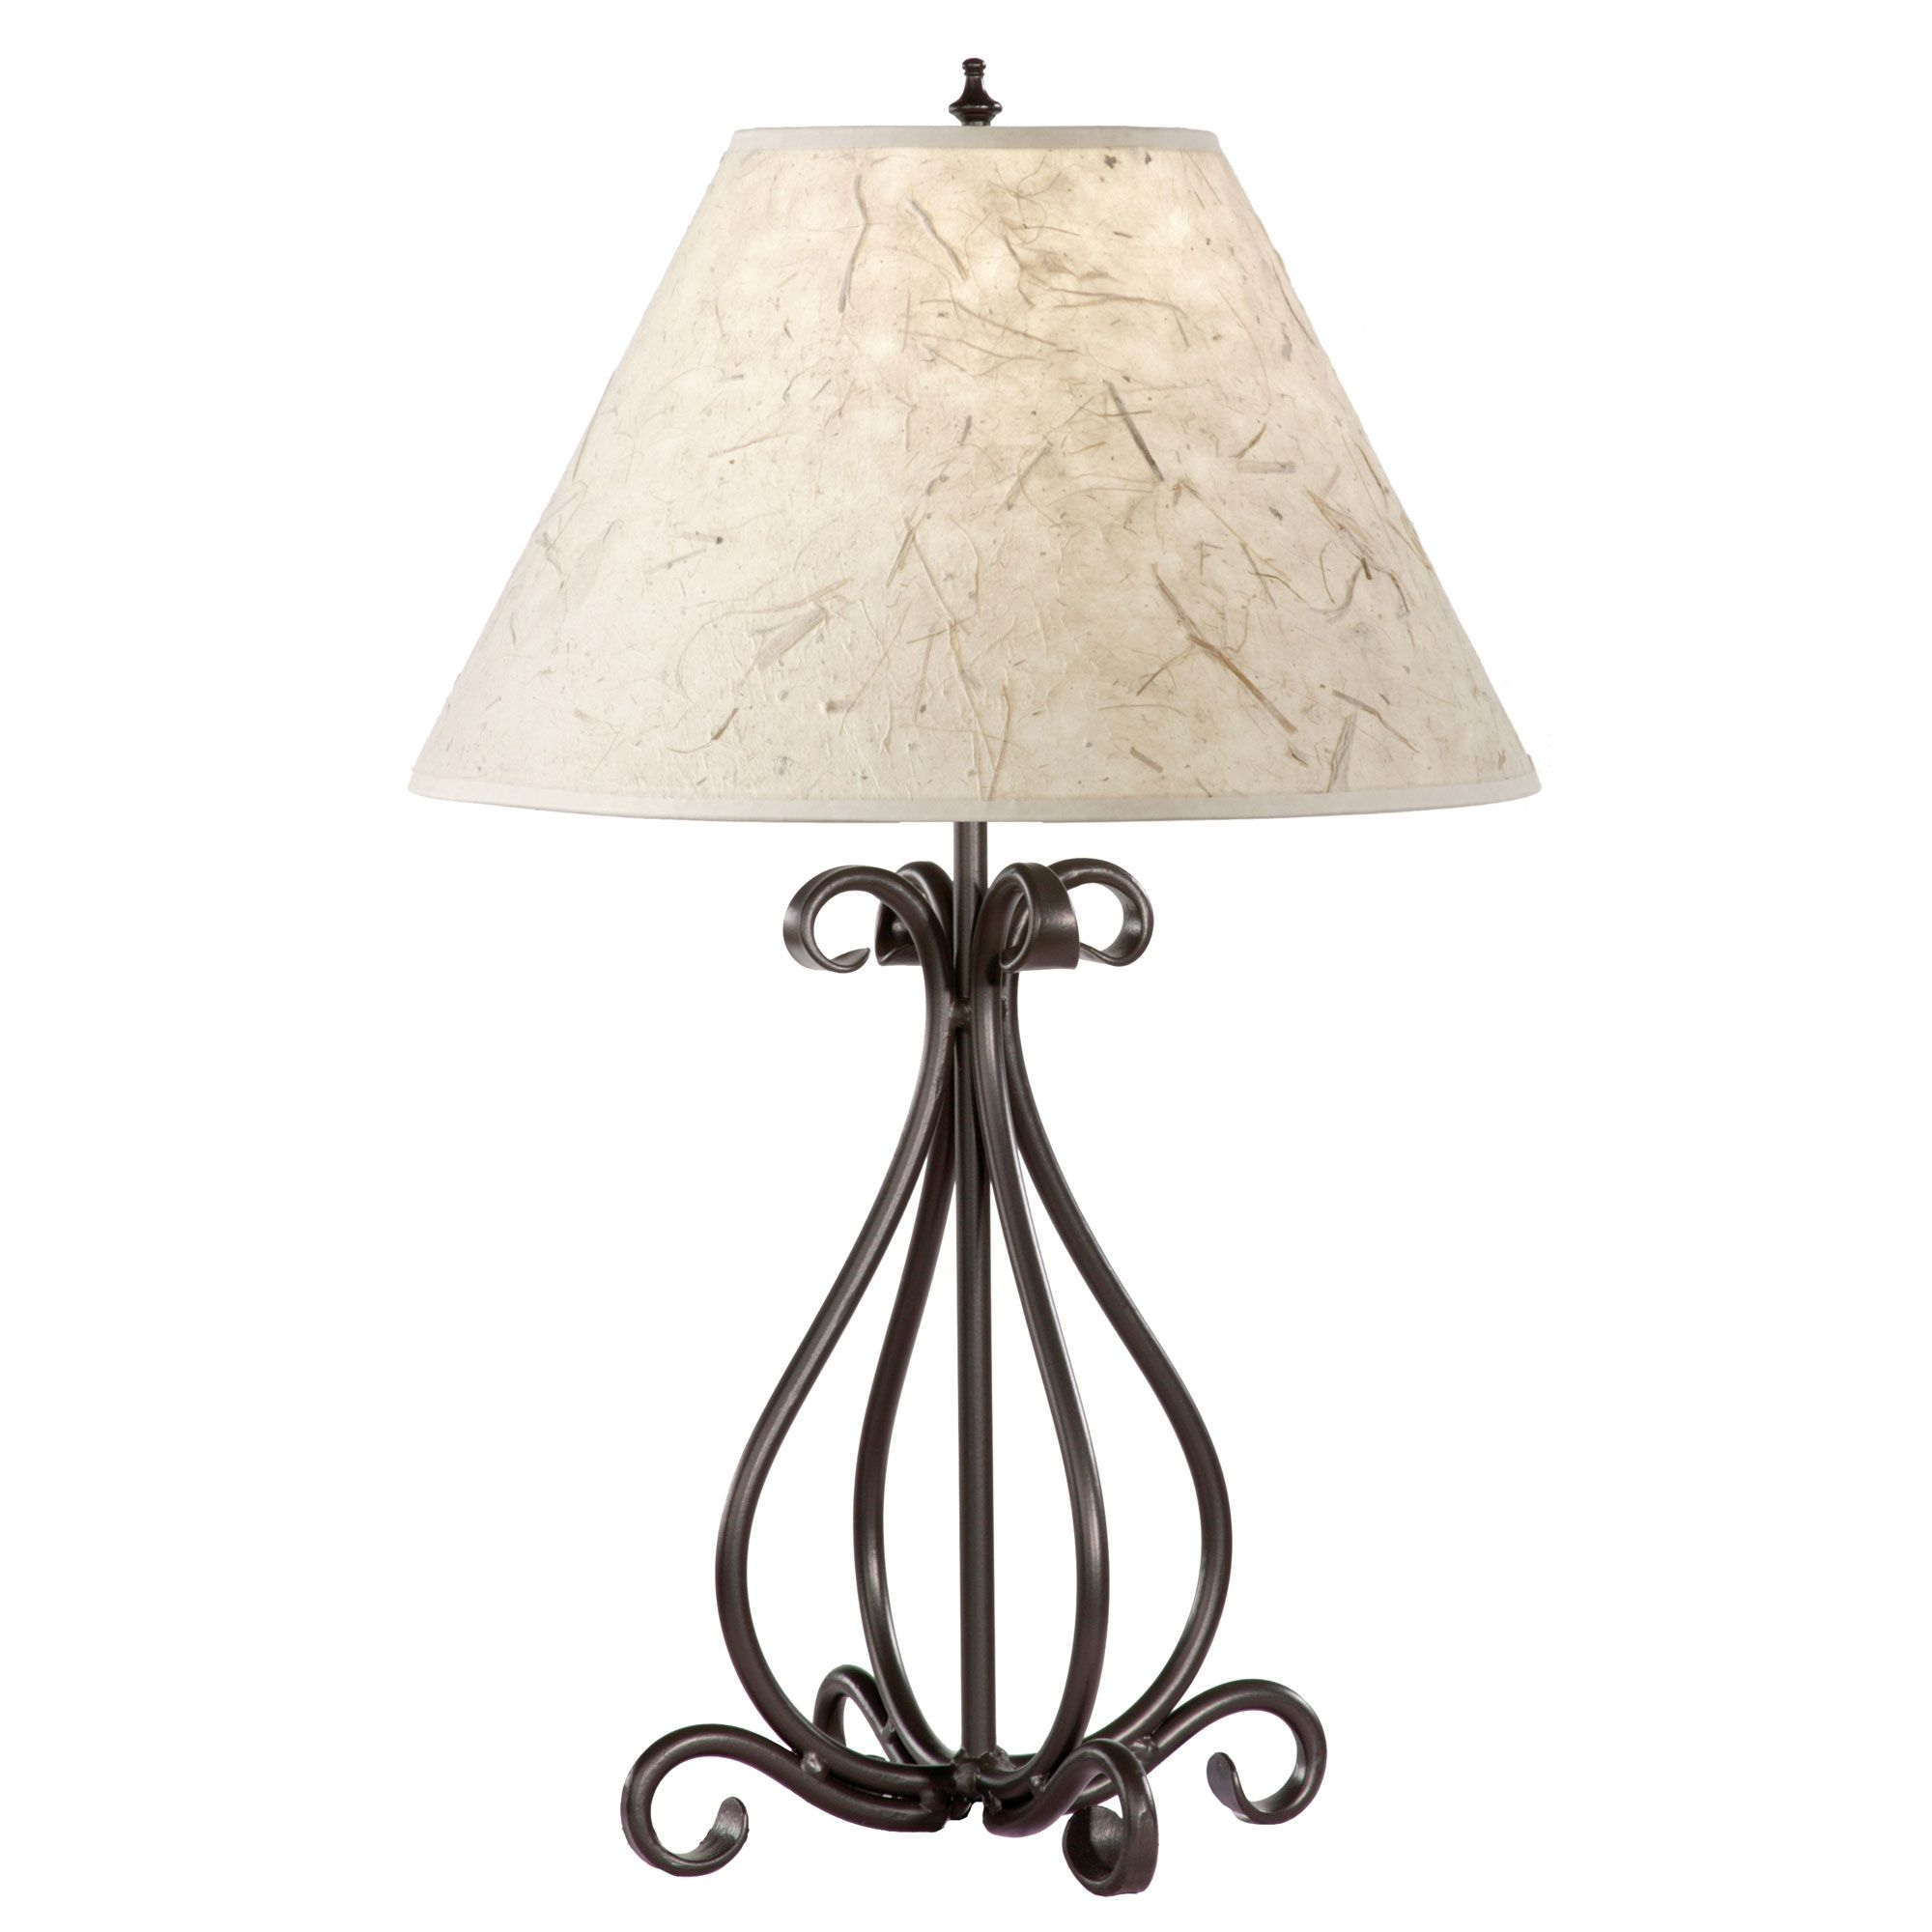 Wrought iron table lamps wrought iron furniture pinterest iron wrought iron table lamps aloadofball Choice Image